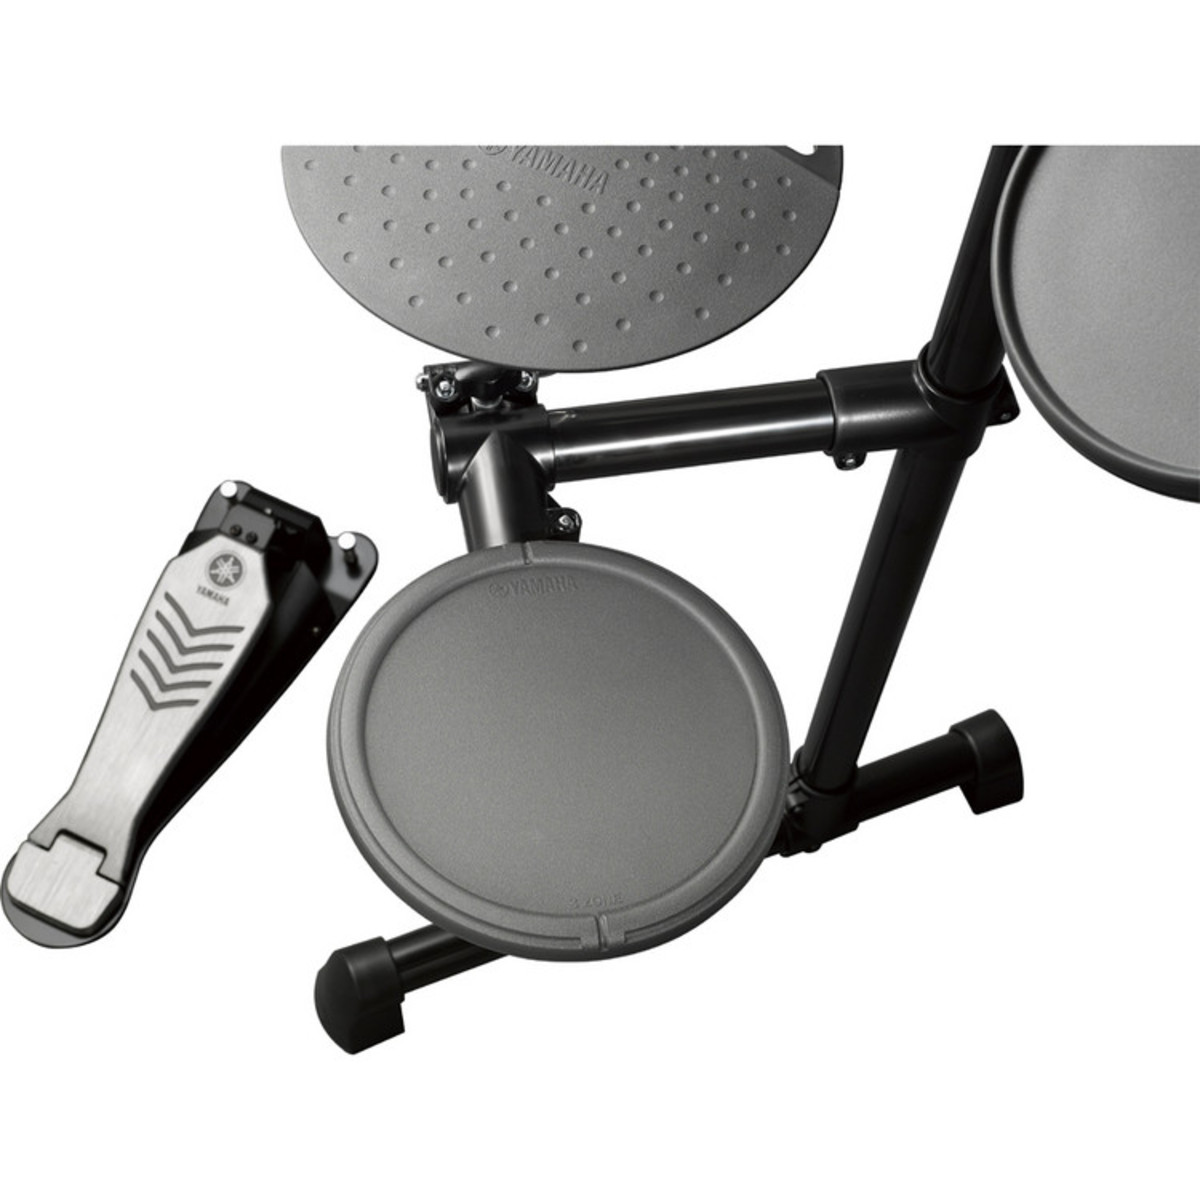 yamaha dtx450k electronic drum kit nearly new at gear4music. Black Bedroom Furniture Sets. Home Design Ideas